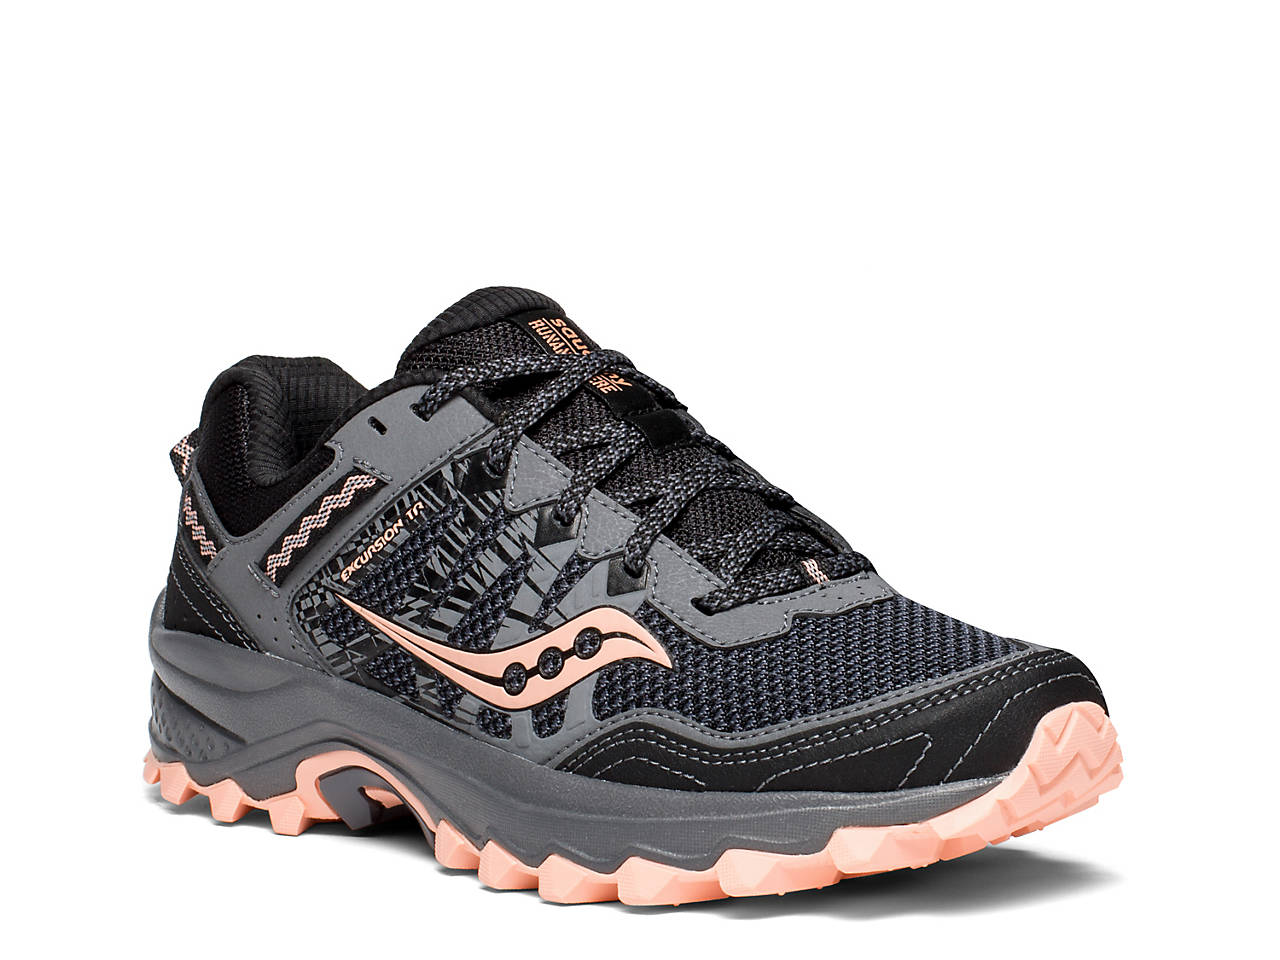 e3224dc170 Excursion TR 12 Running Shoe - Women's